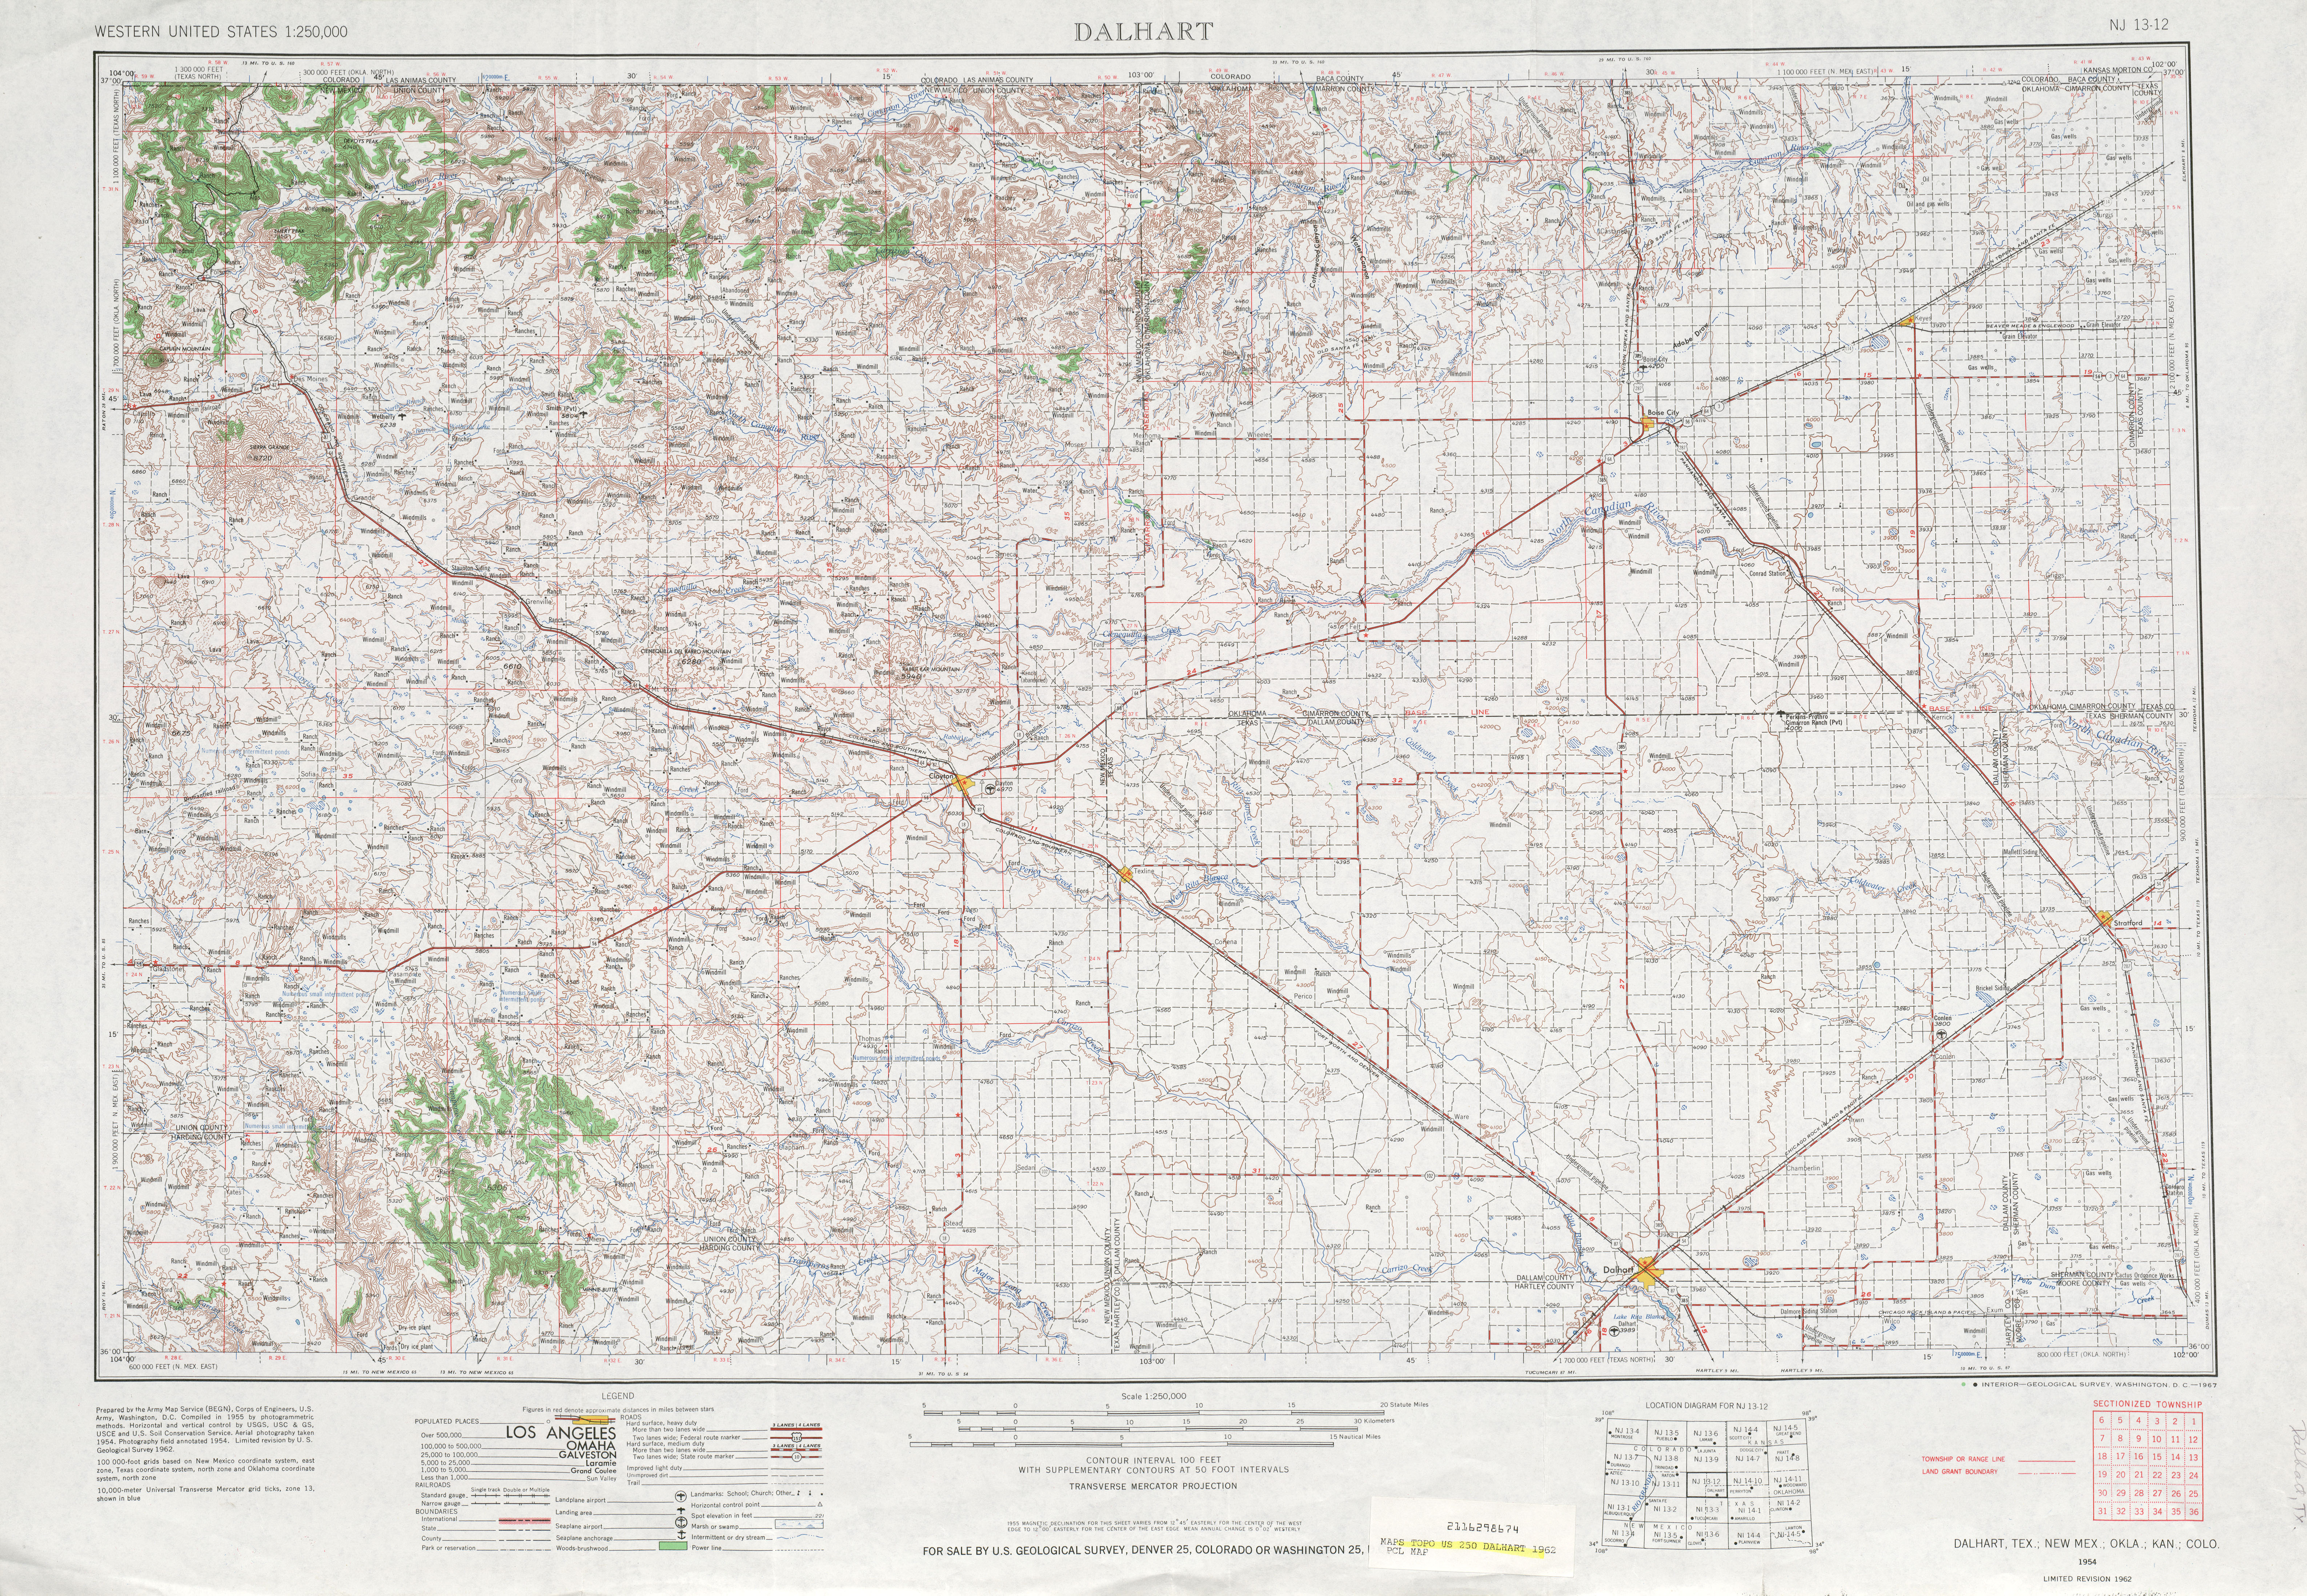 Dalhart Topographic Map Sheet, United States 1962